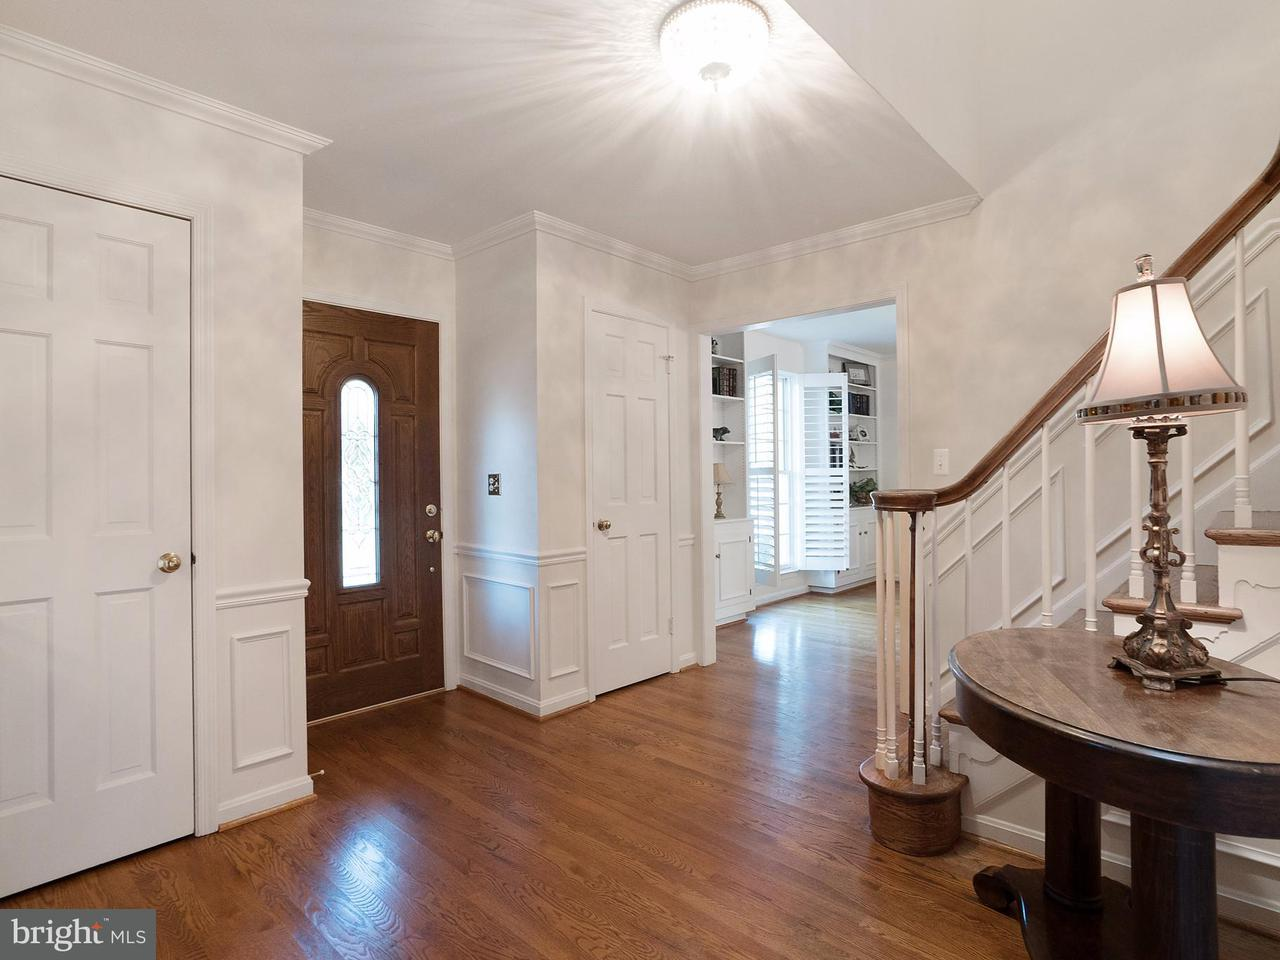 Single Family Home for Sale at 3705 RIVERWOOD Court 3705 RIVERWOOD Court Alexandria, Virginia 22309 United States